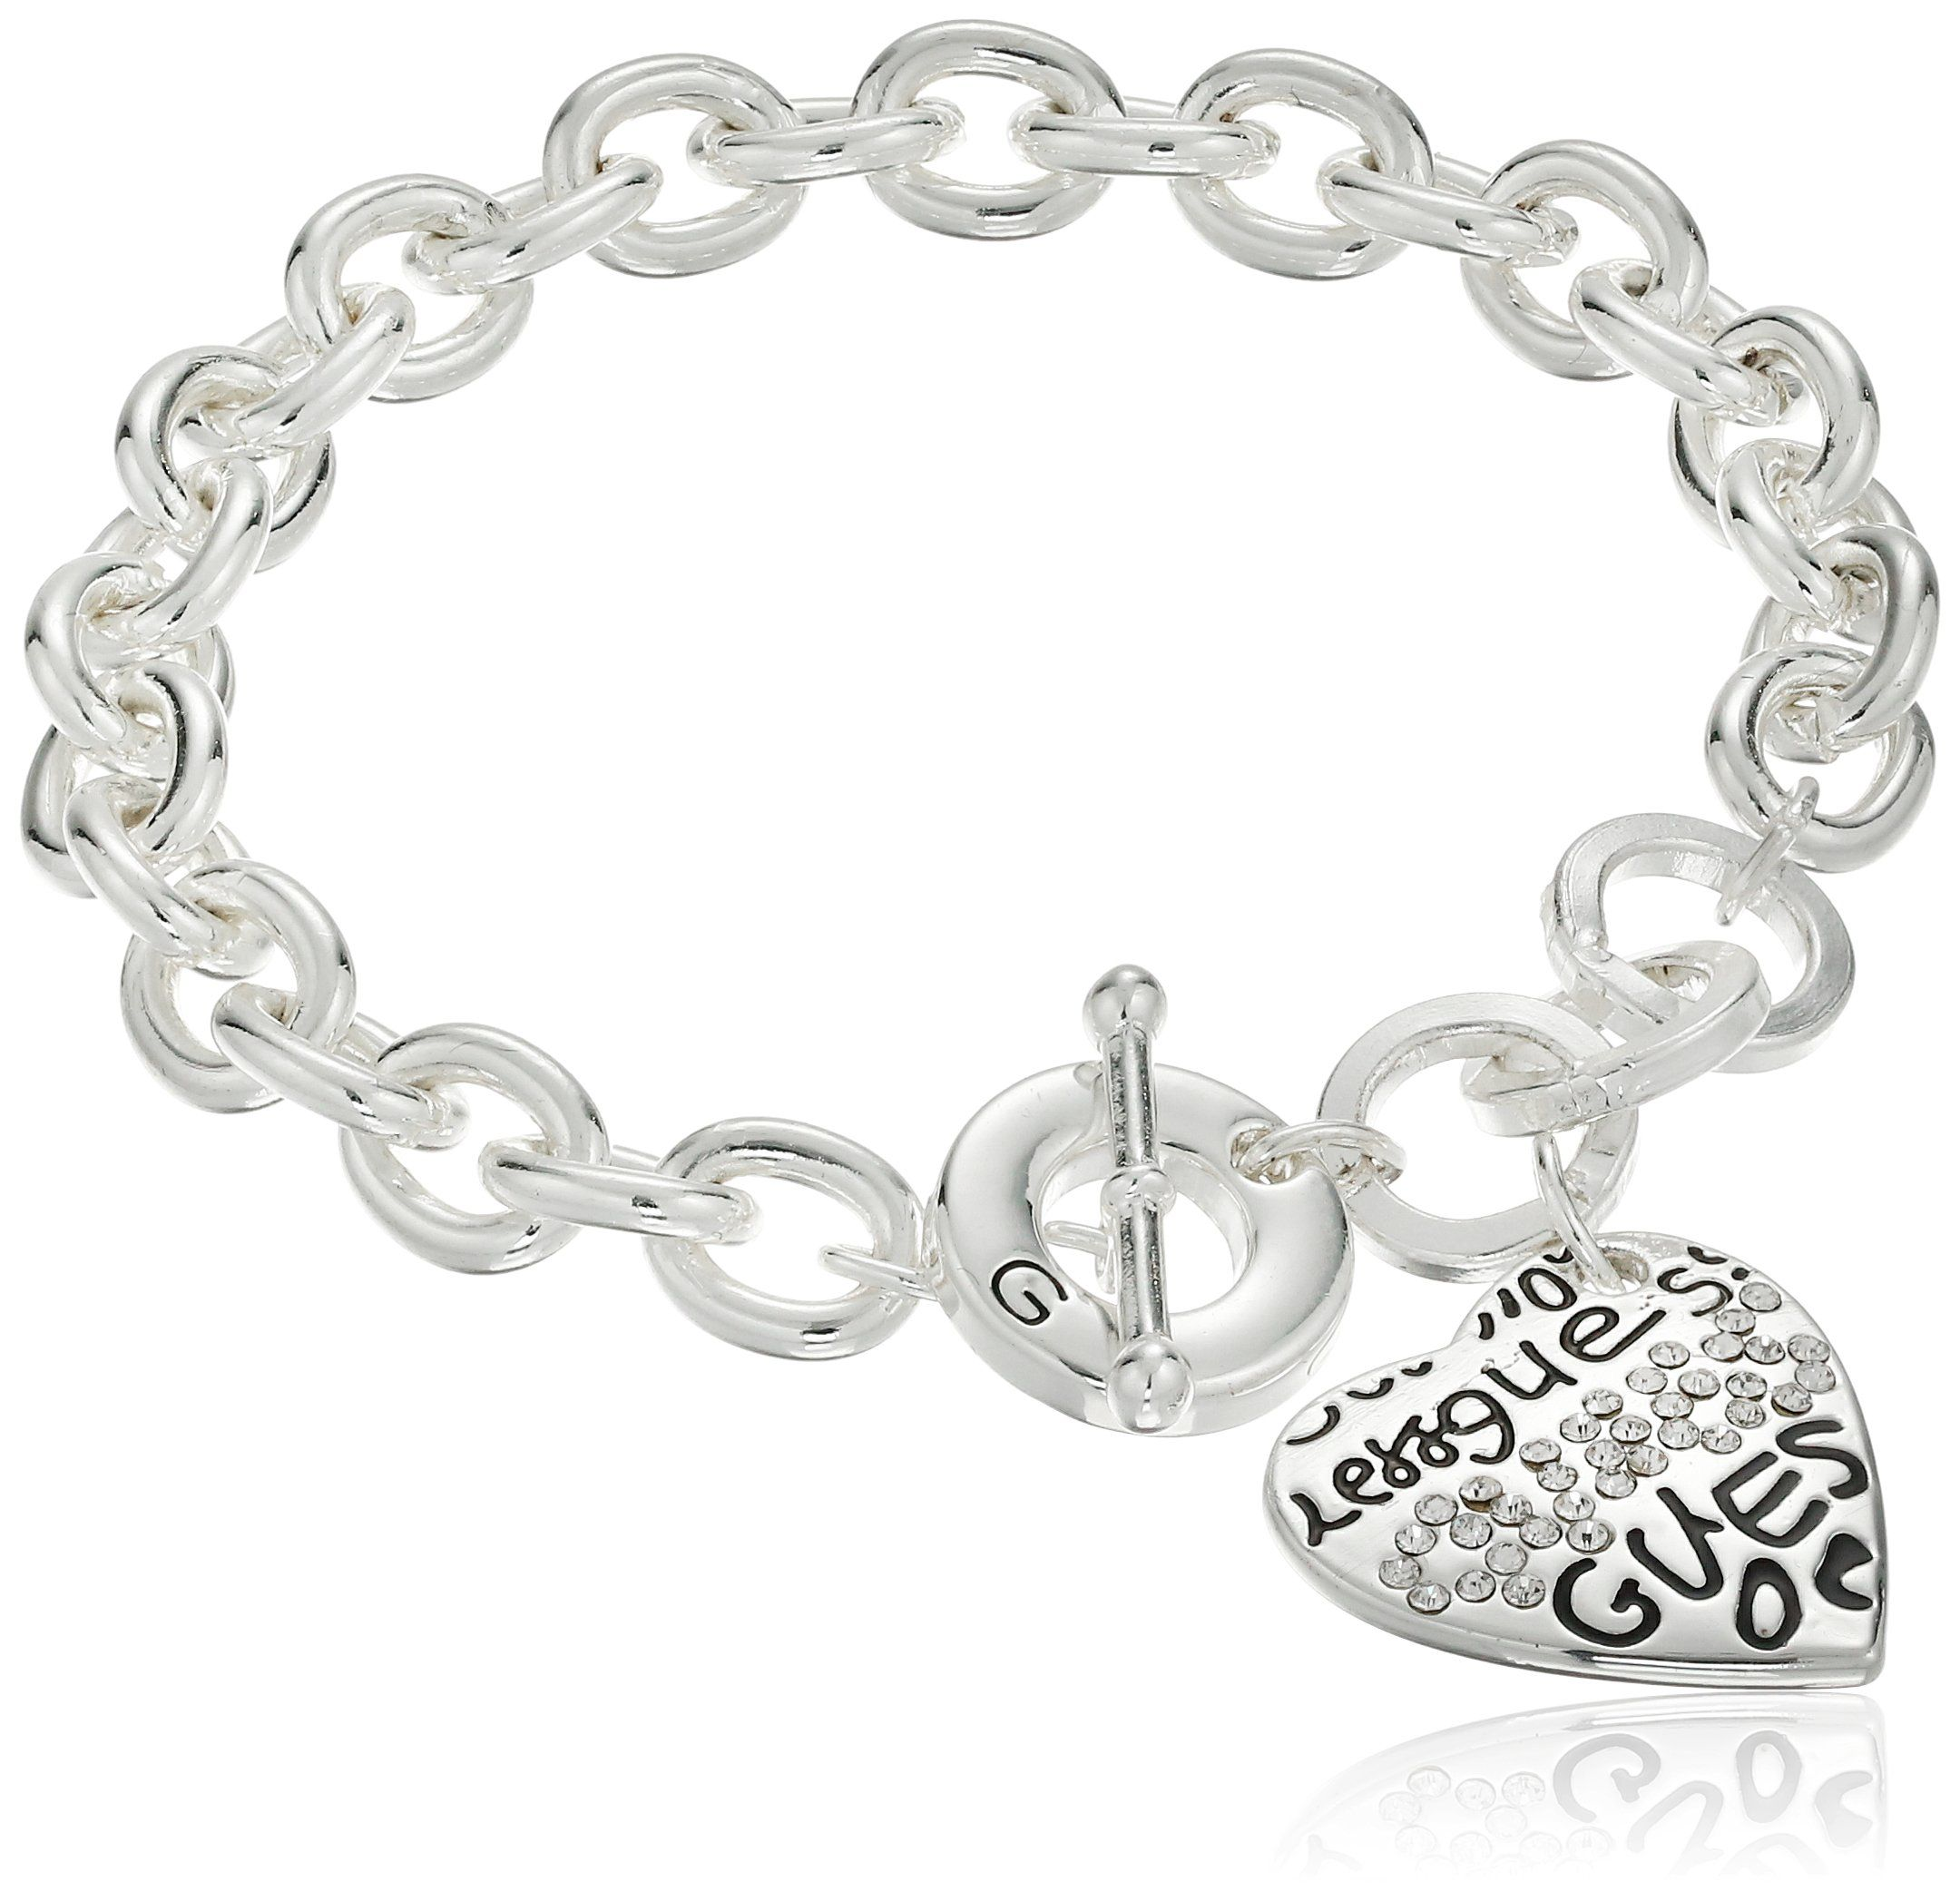 """GUESS """"Basic"""" Silver and Crystal Graffiti Heart Toggle Charm Bracelet Charm 1"""" H x 0 8"""" W Made in China Silver Metal Logo Heart Charm Bracelet"""